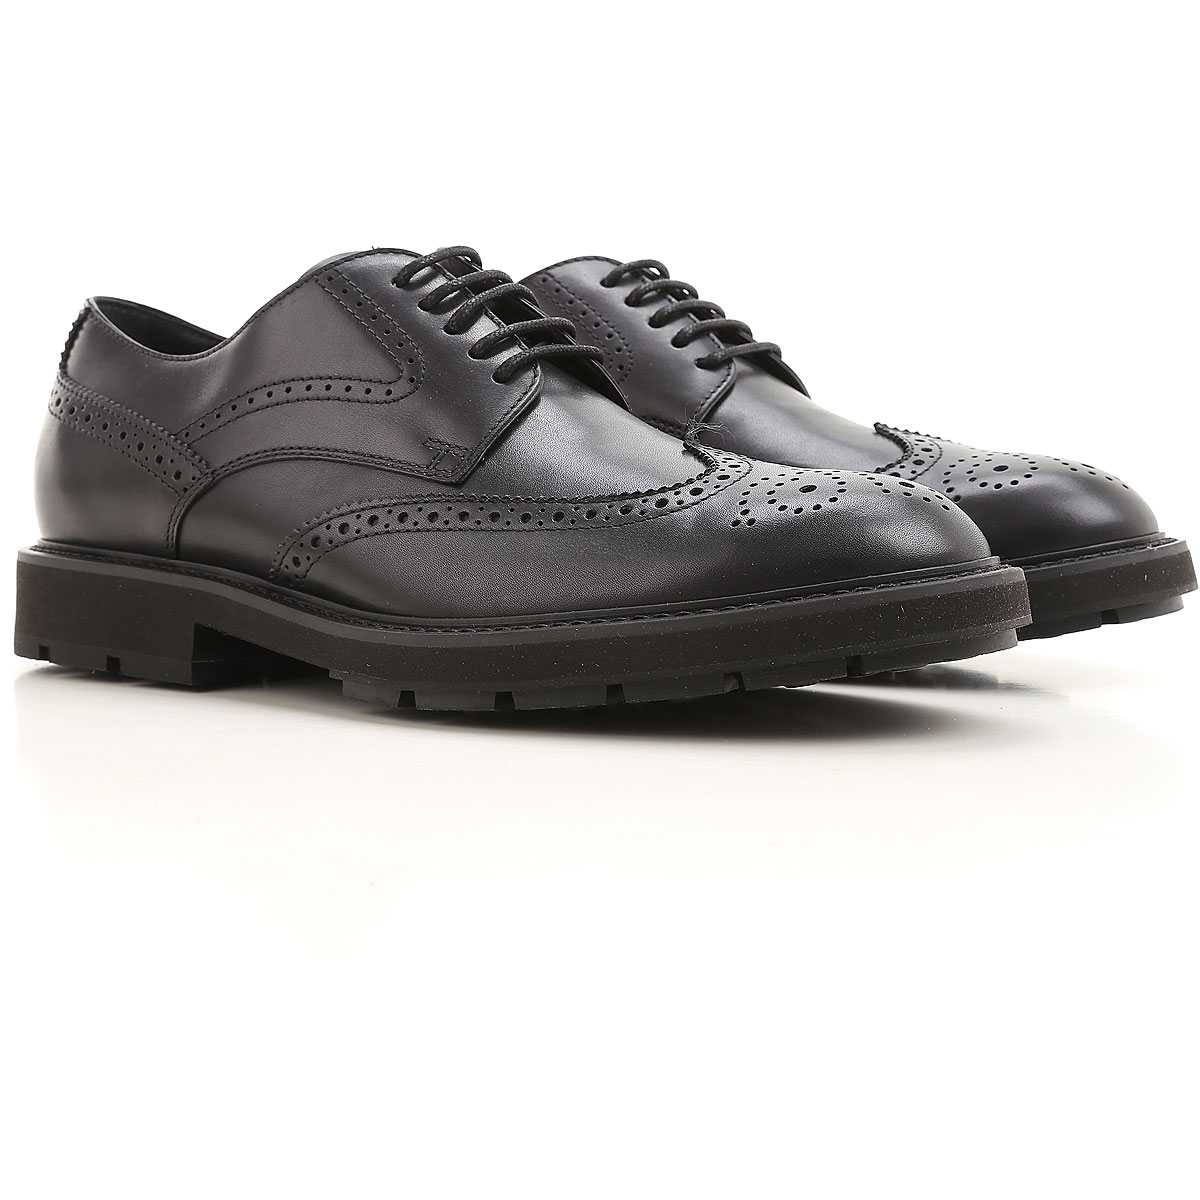 Tods Brogue Shoes, Black, Leather, 2017, 10 11 12 7 8 8.5 9